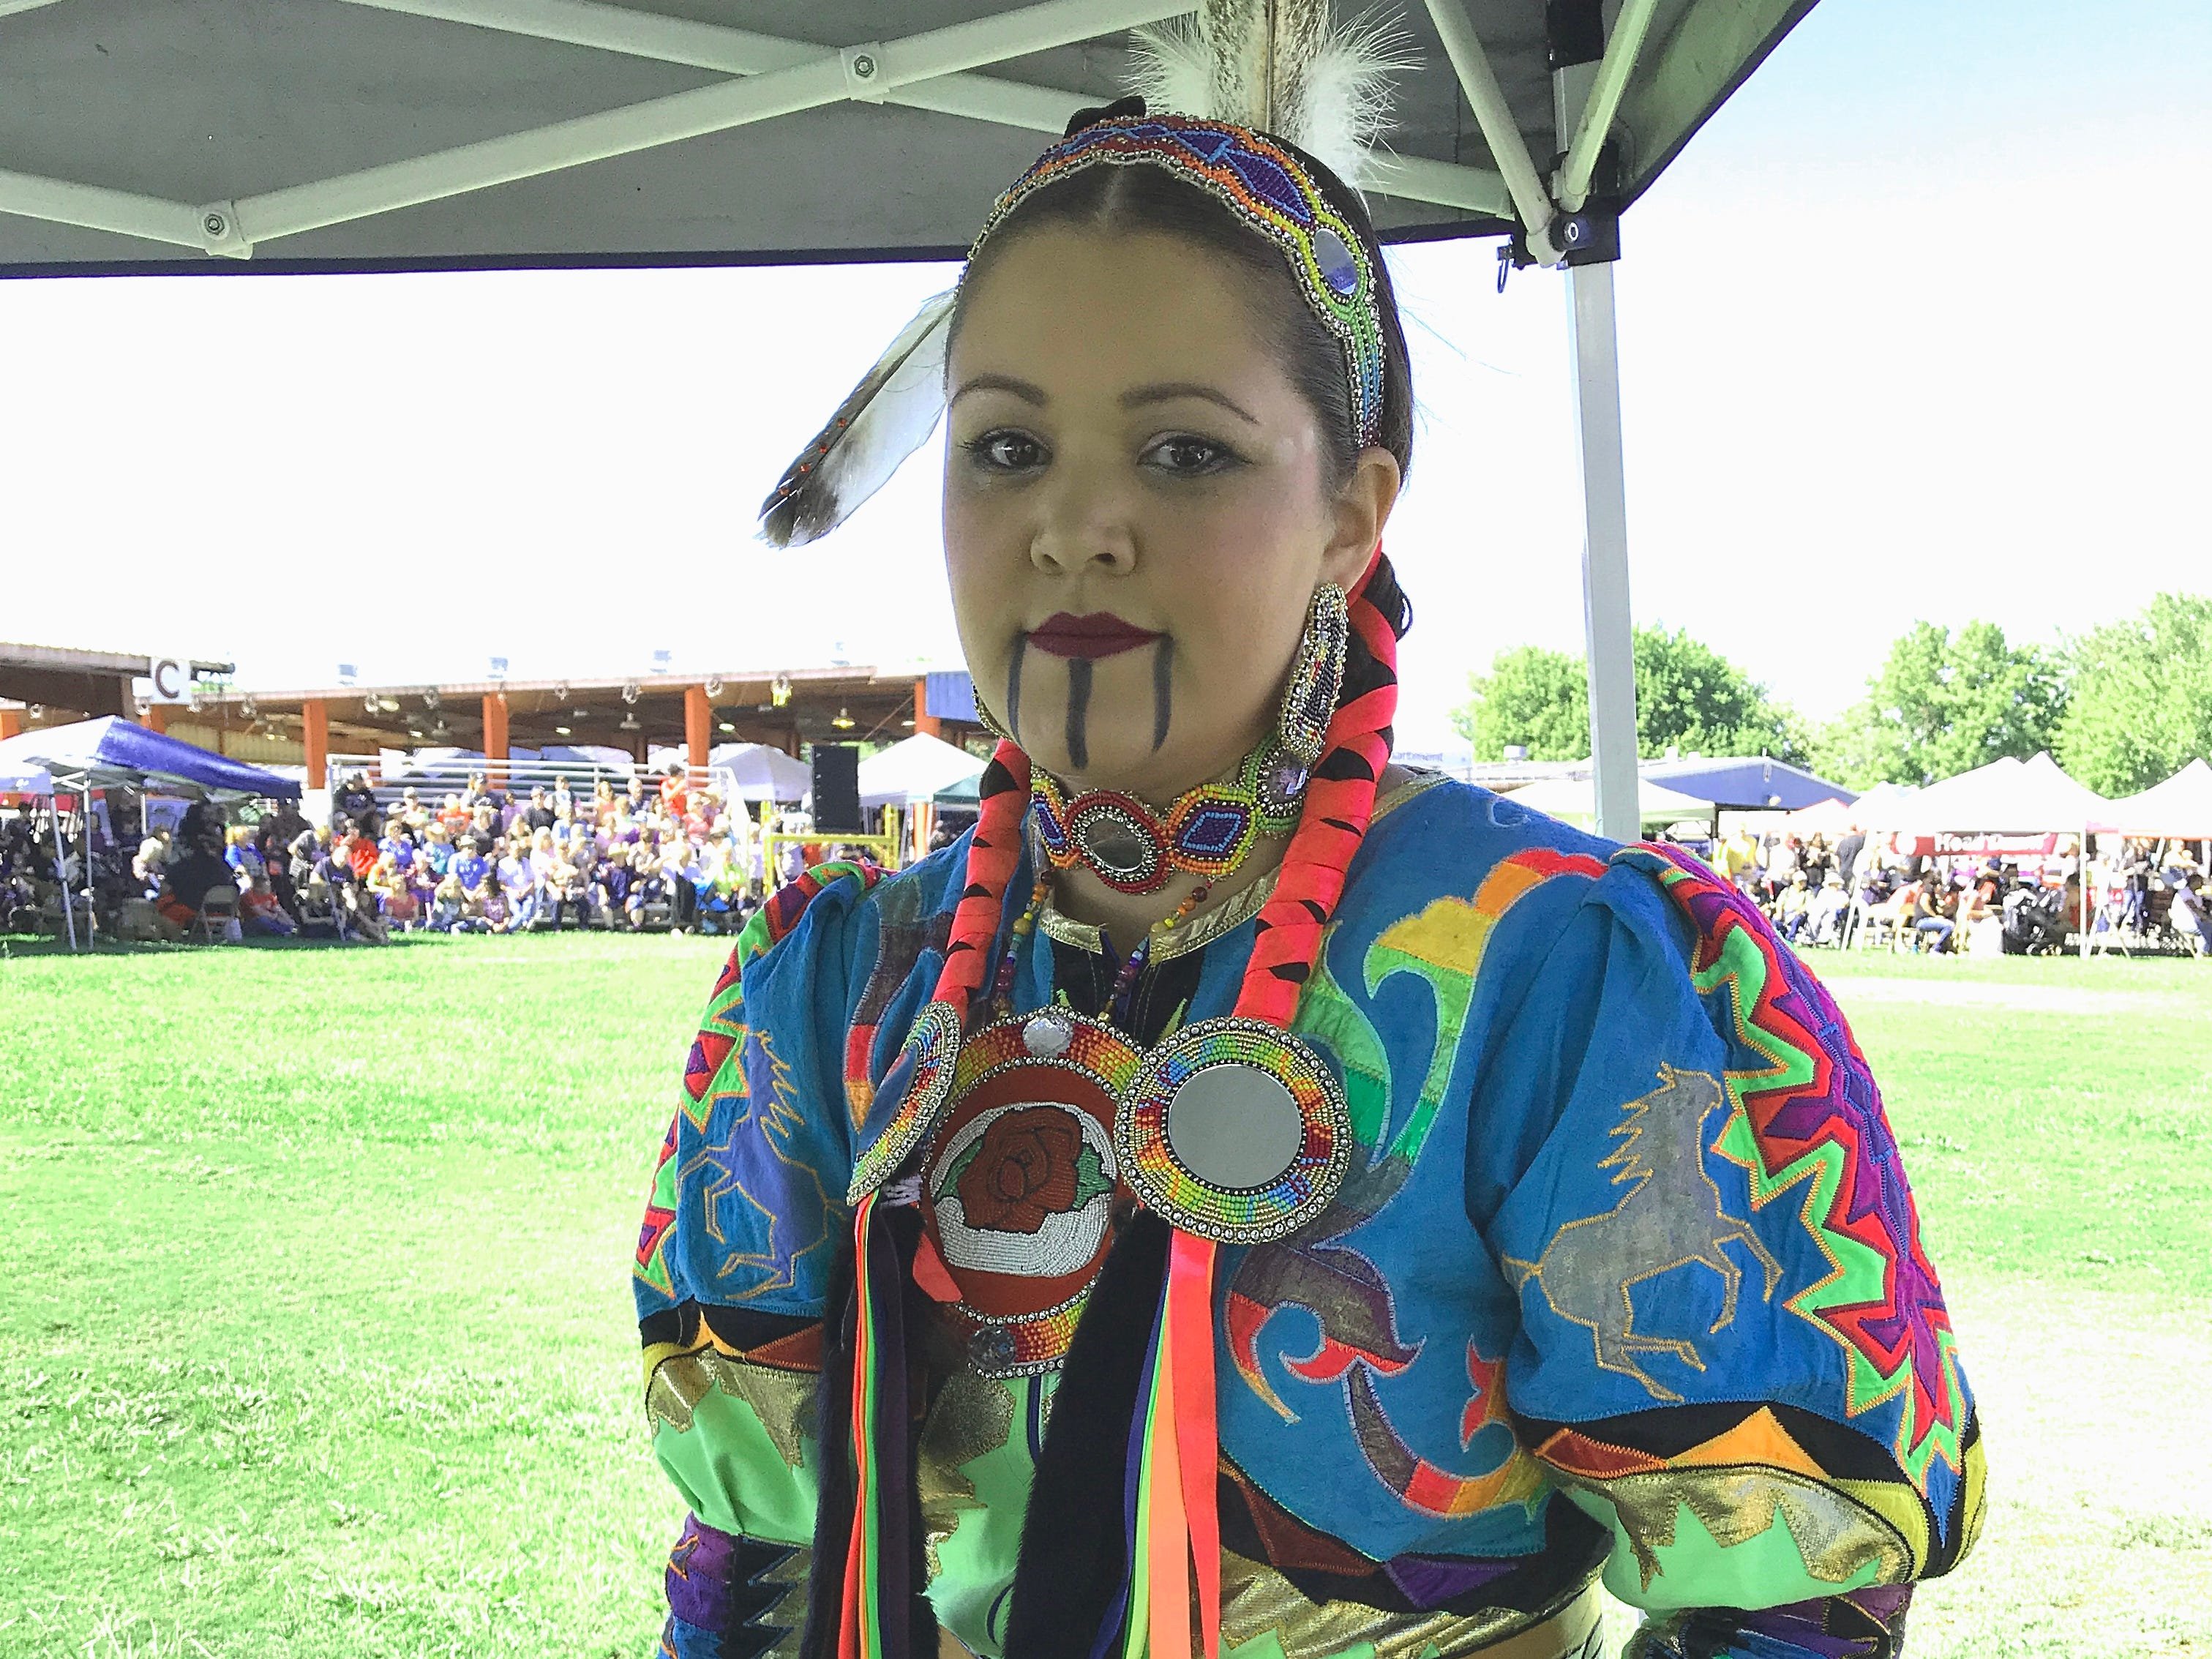 Vanessa Scholfield from Chico, of Wintu, Pit River and Wailacki heritage, prepares for Saturday's grand entry at the 2018 Stillwater Powwow at the Shasta District Fair grounds in Anderson.